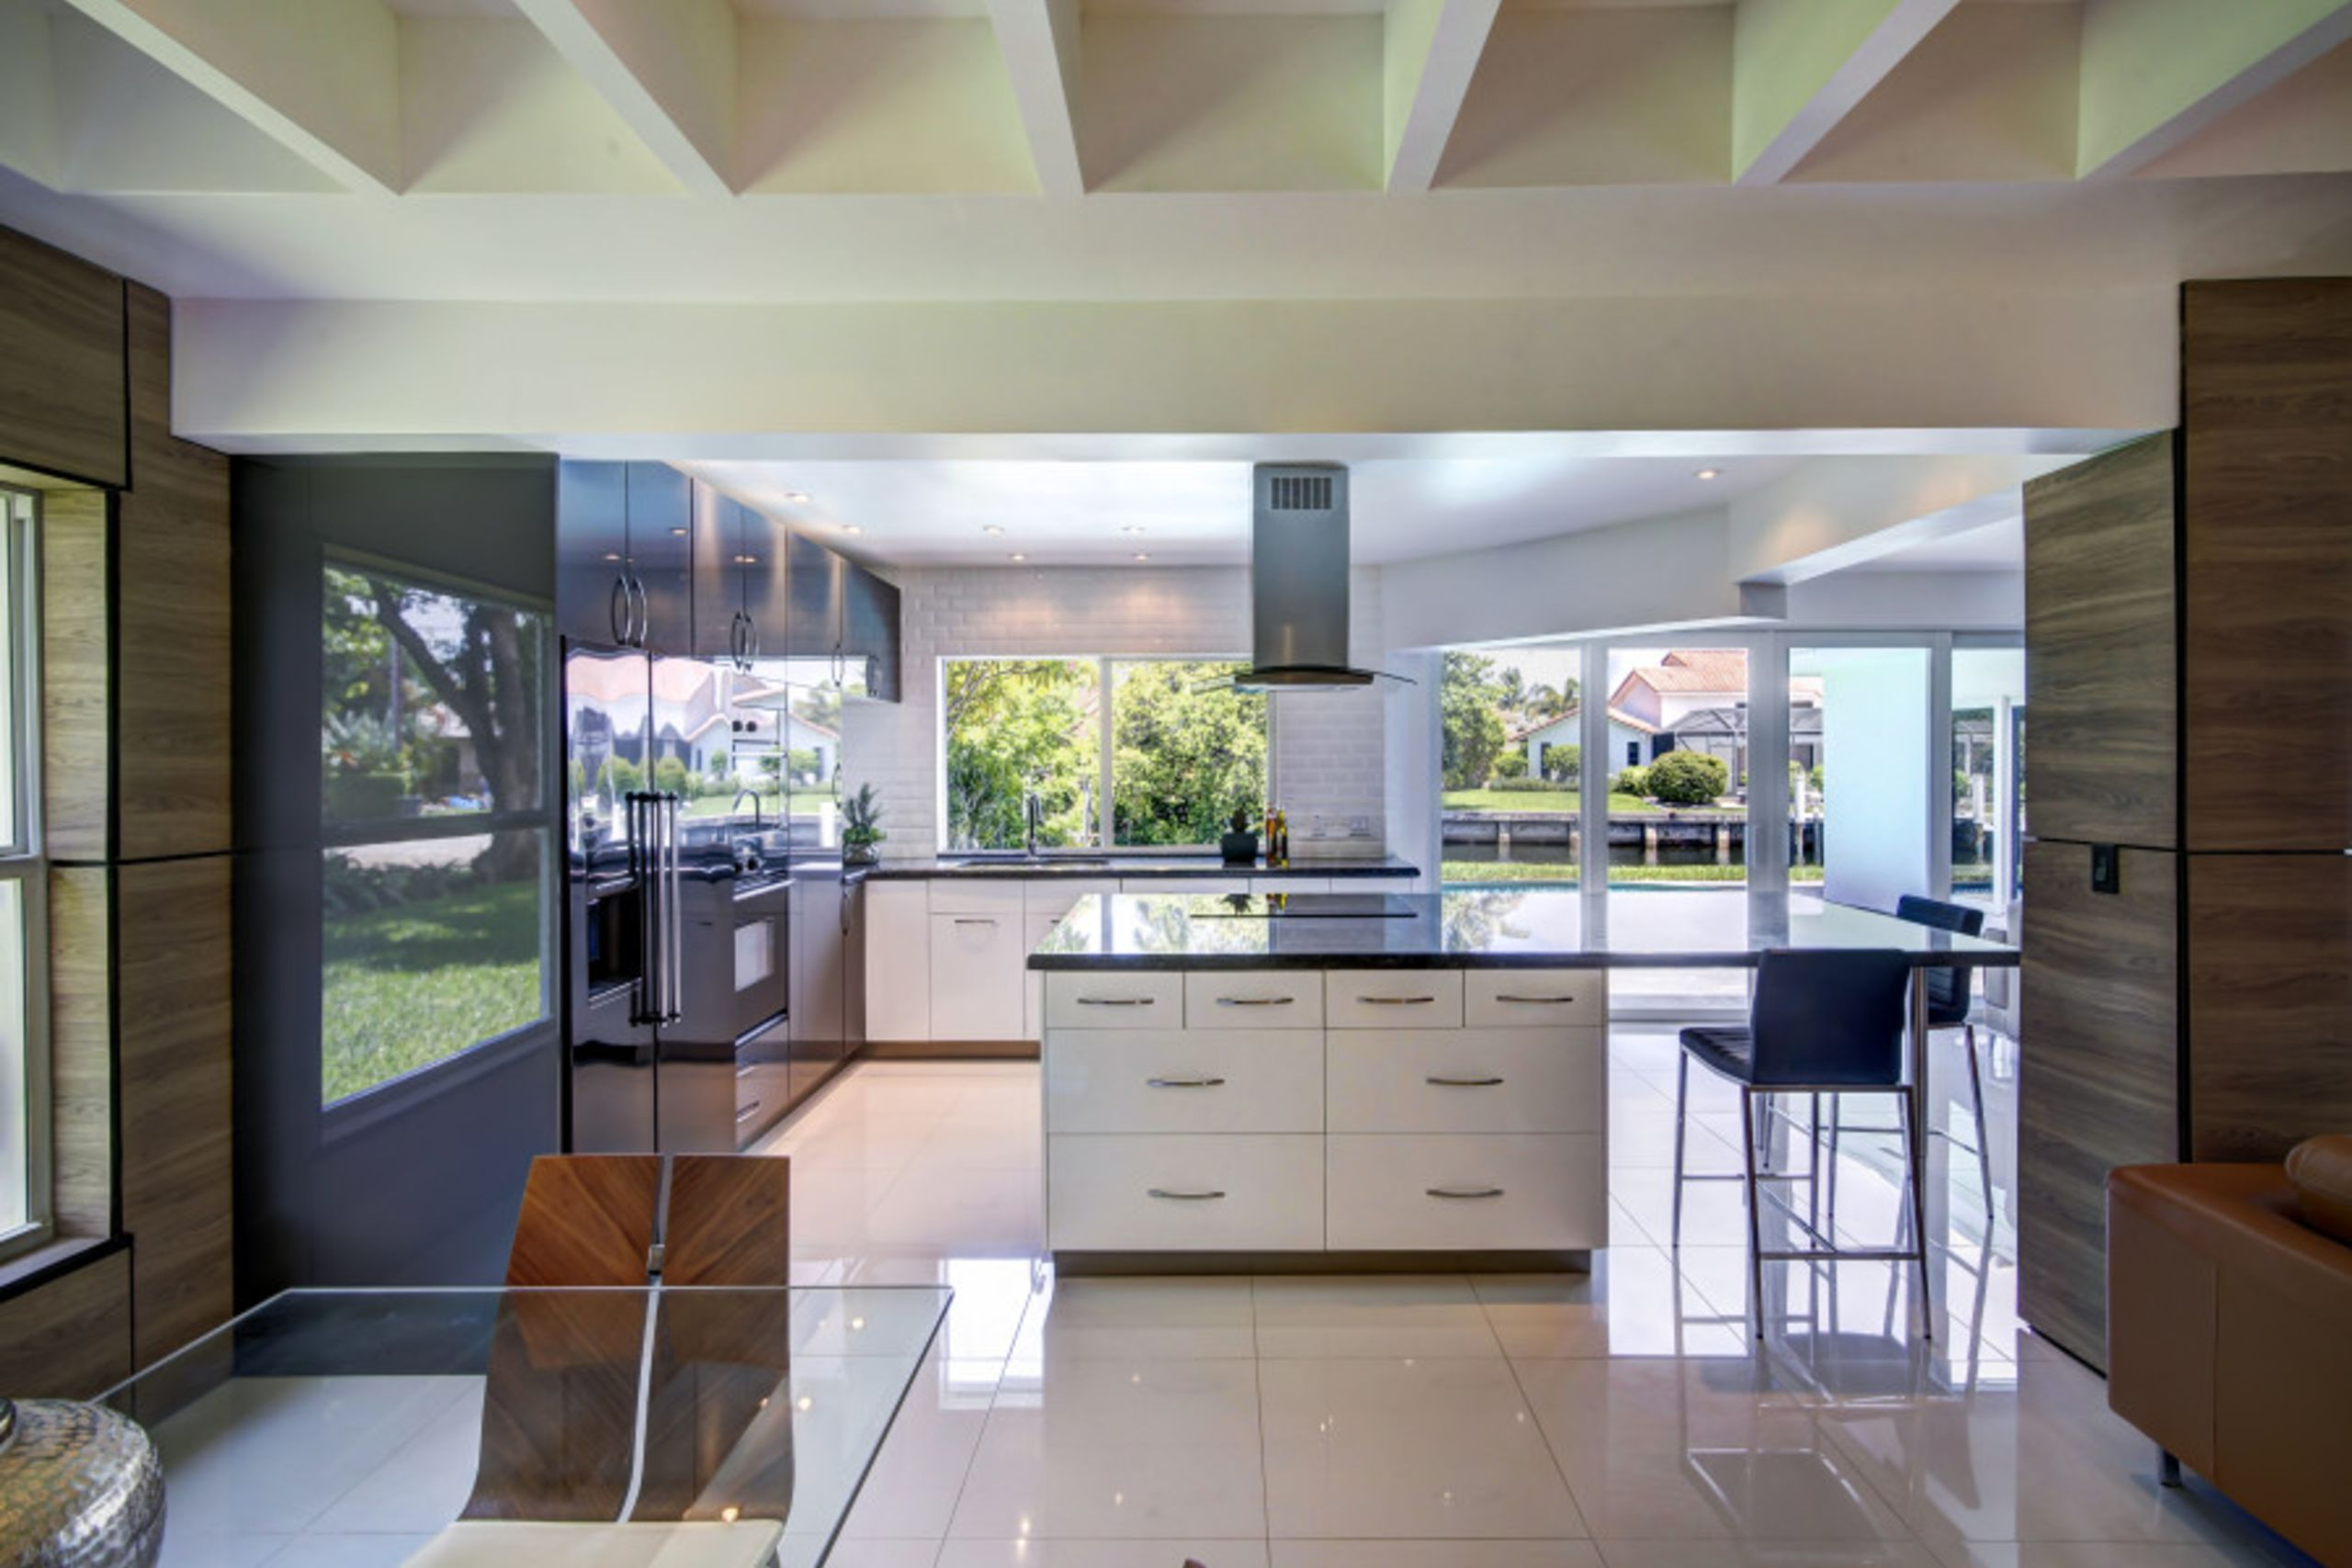 Experience cooking in state of the art kitchen